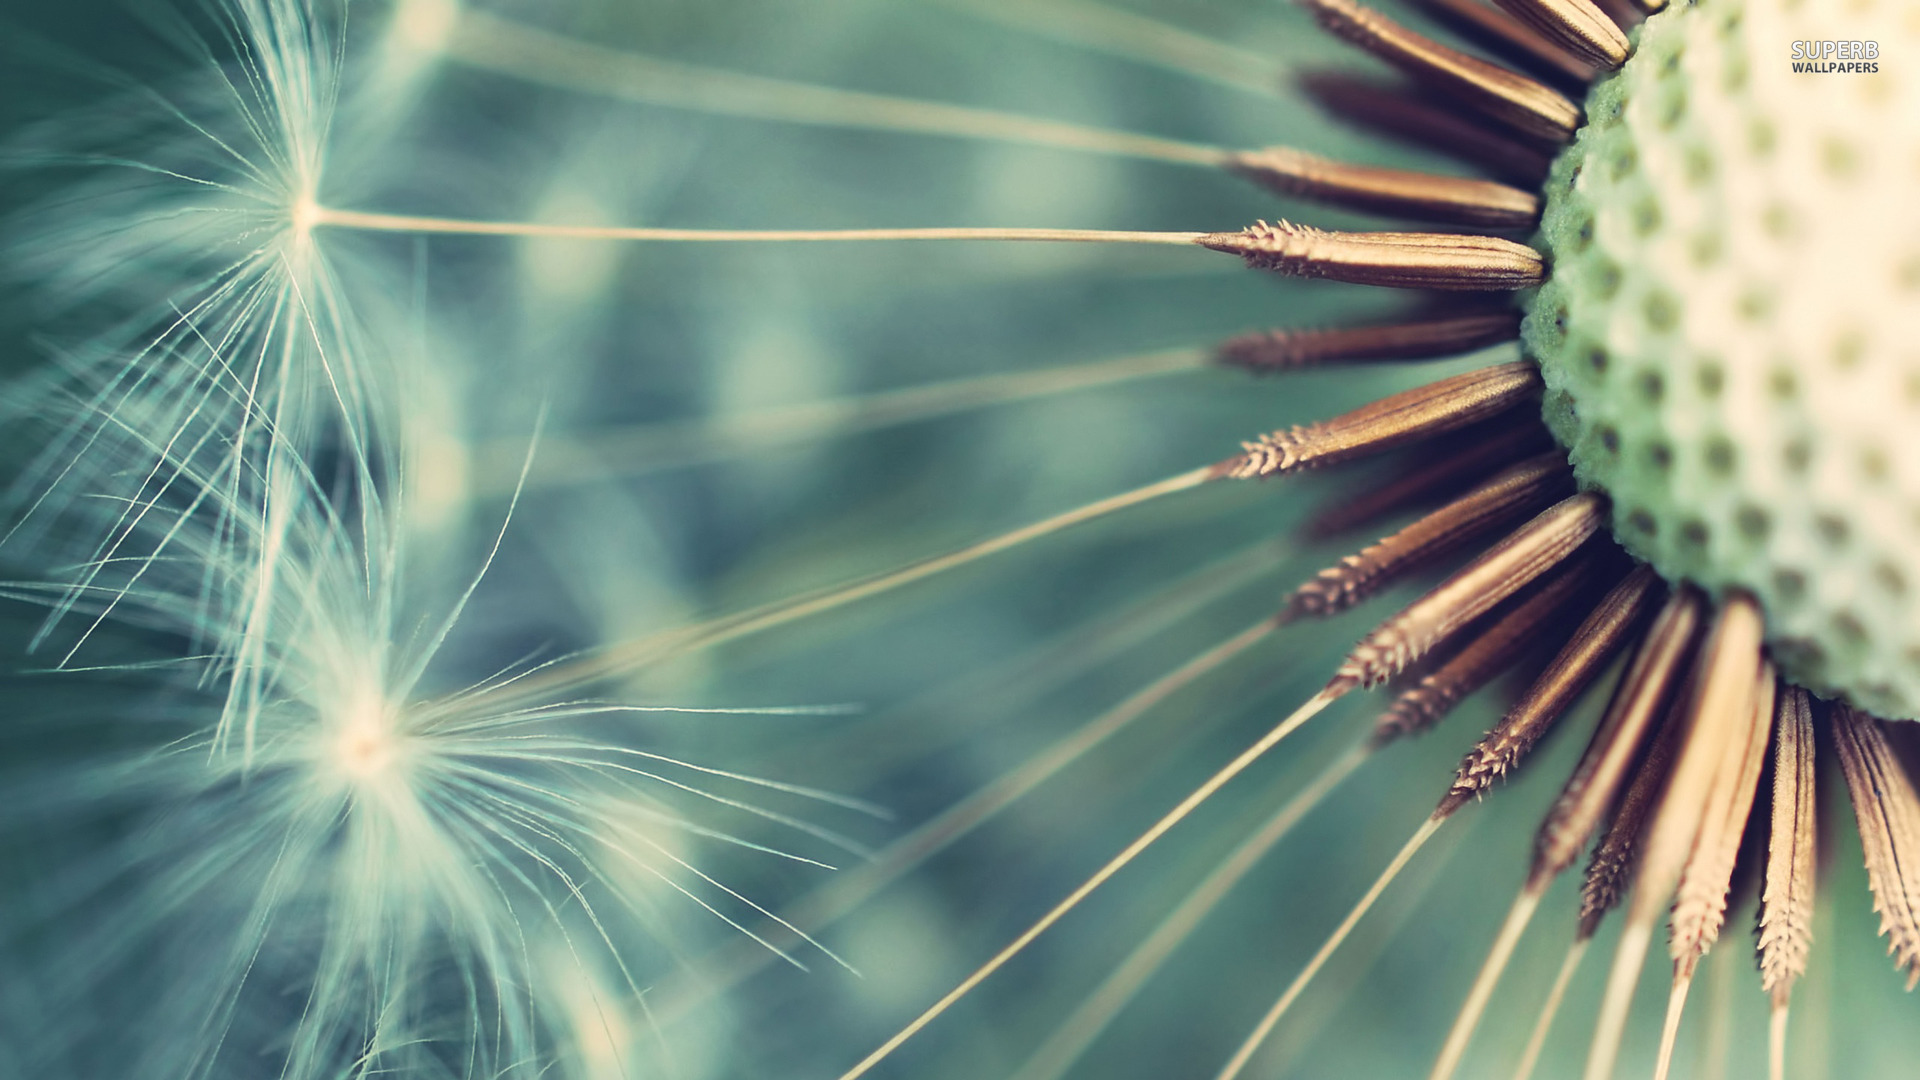 Dandelion close up wallpaper 1920x1080